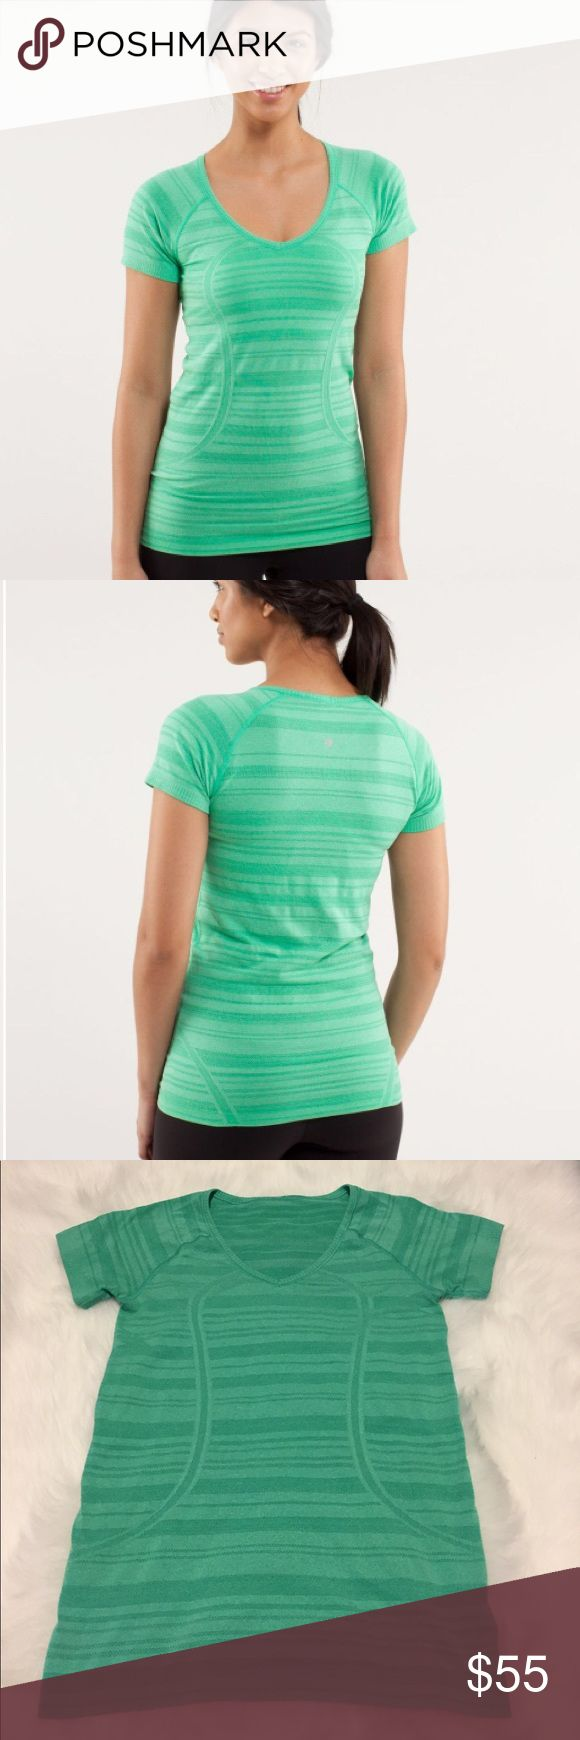 "Lululemon Run: Swiftly Tech V Neck - Very Green Lululemon Run: Swiftly Tech V Neck in Very Green! Love the tonal stripe! Deep V-neck of this anti-stink shirt makes it easy to slip on and off! This shirt stays comfortable when wet & wicks moisture away from our skin. Body is seamless to minimize chafing! Great alone or layered! The Silverescent fabric has anti-odour properties! Size 6. 26"" long & 16"" across. No size tag. Like new!! C2273M431062717 lululemon athletica Tops Tees - Short Sleeve"